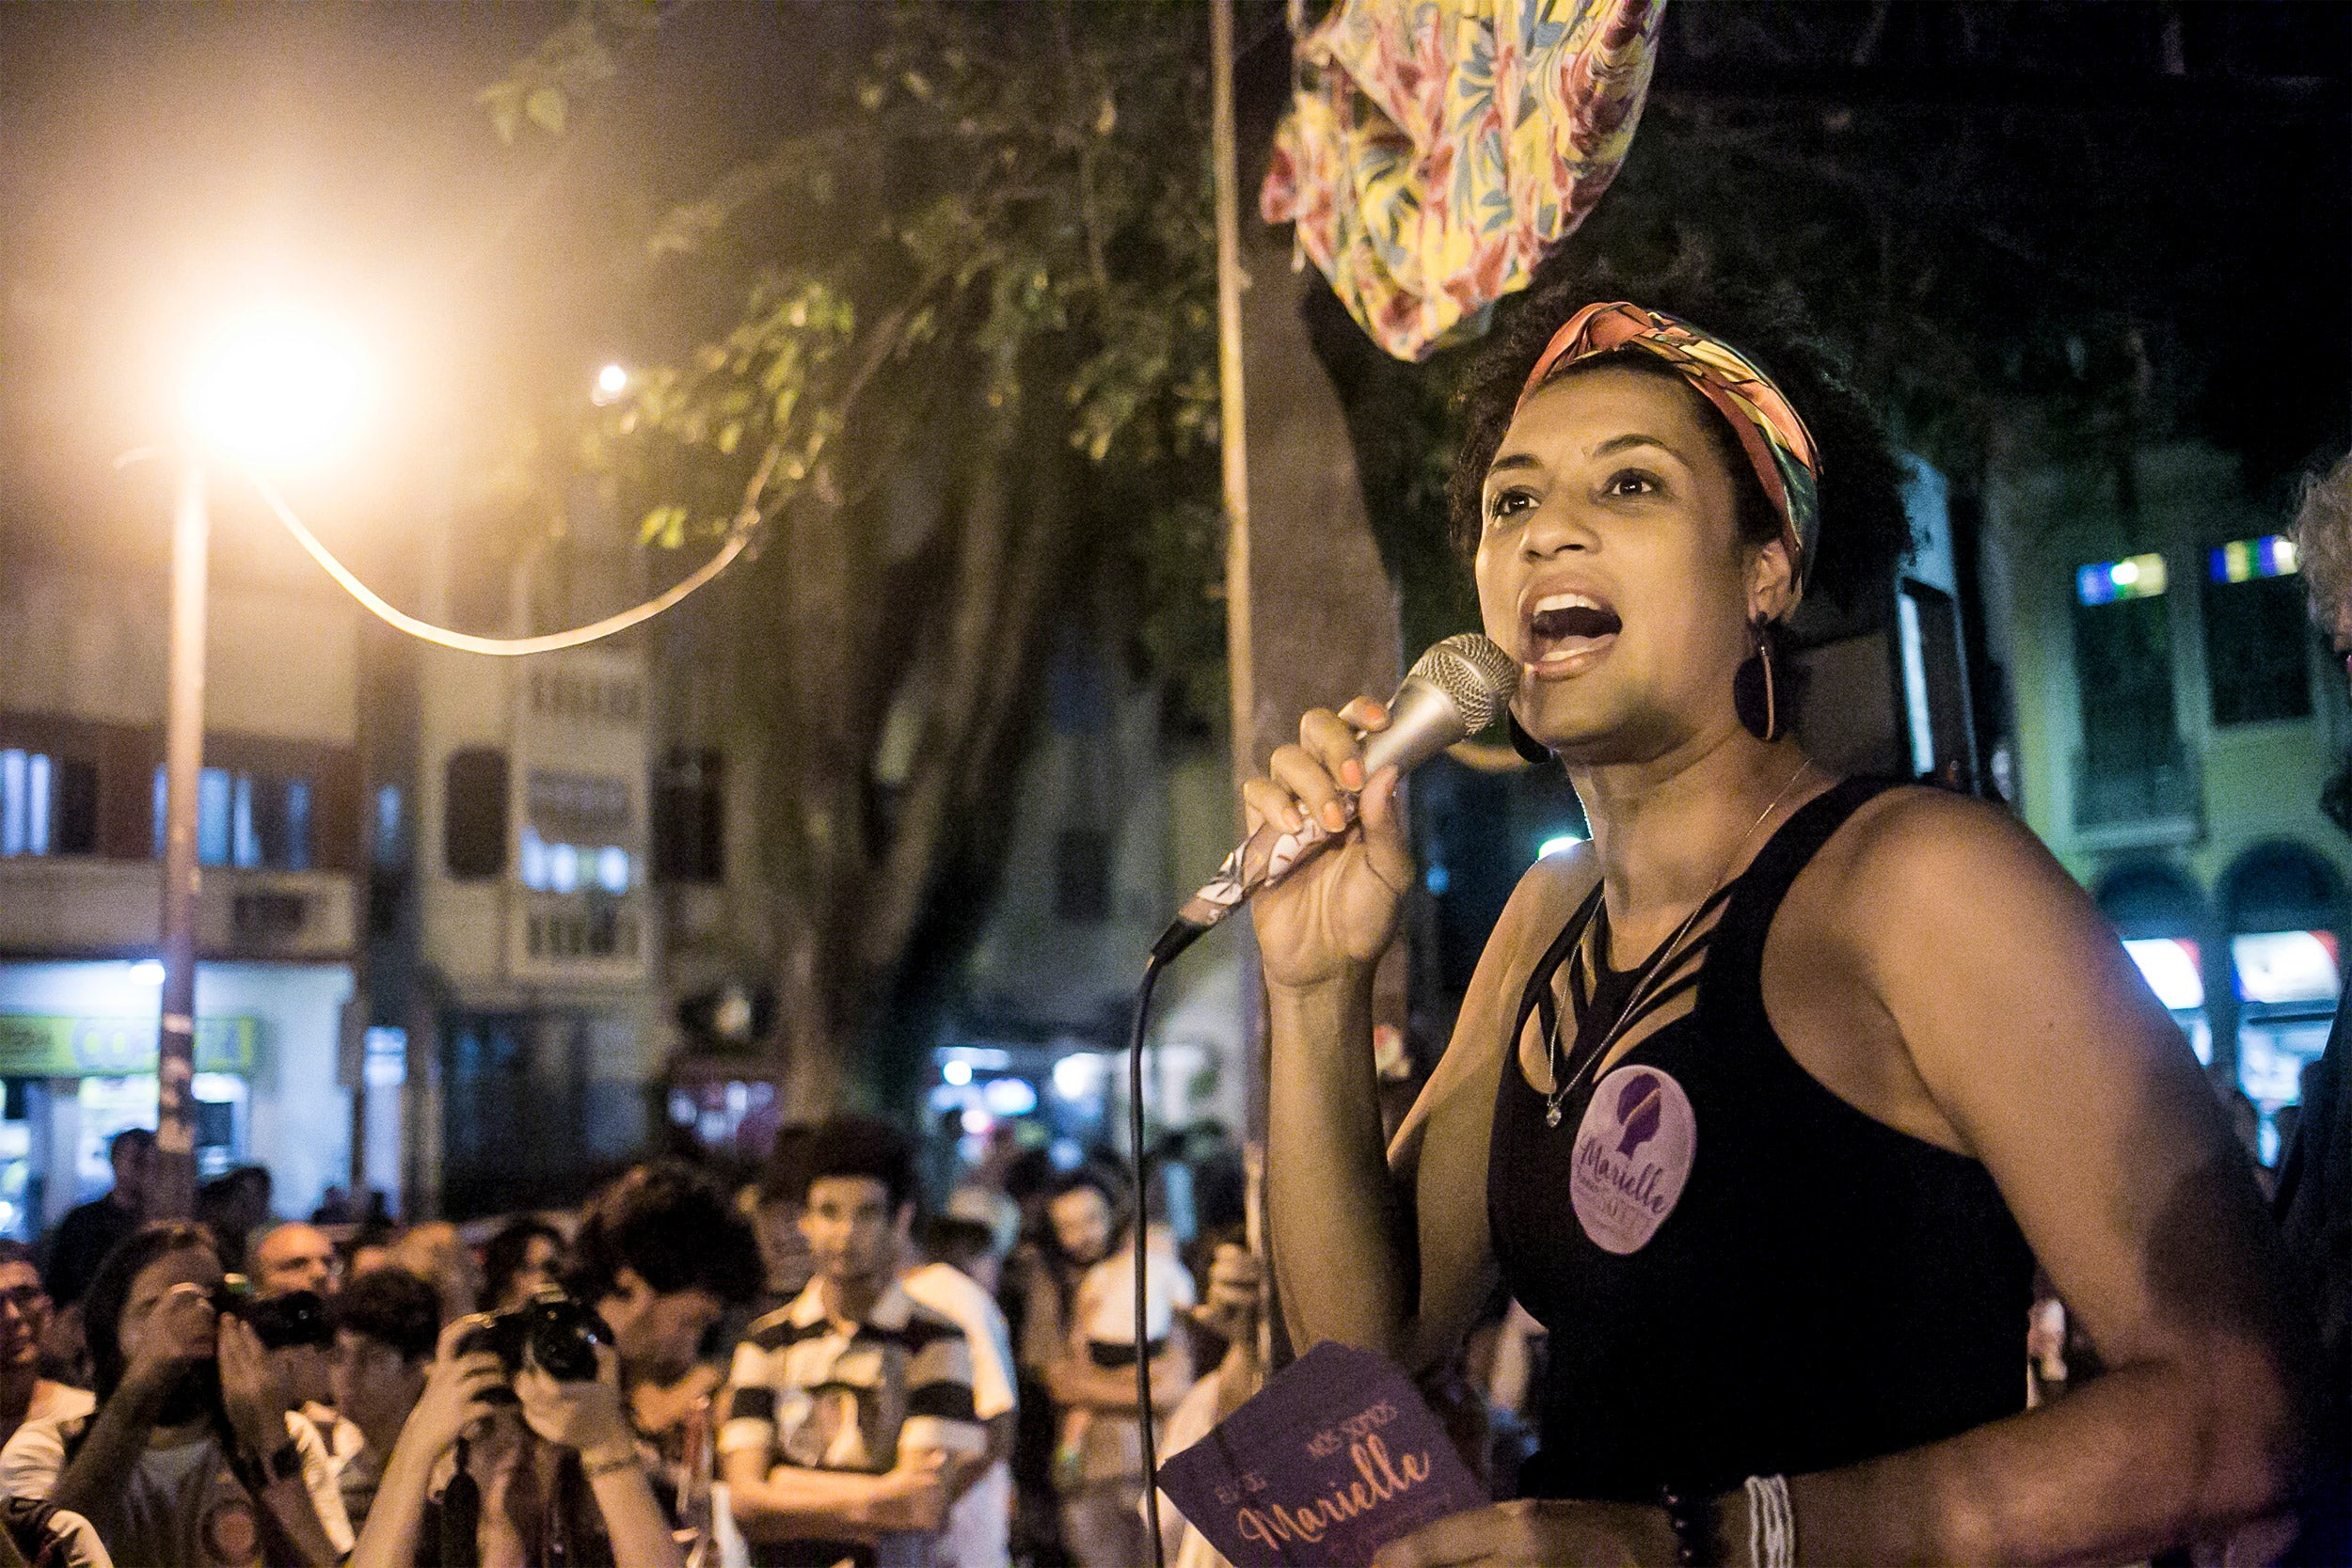 A Harvard conference on Afro-Brazilian issues will honor the memory of activist Marielle Franco (pictured), who was gunned down last month in Rio.